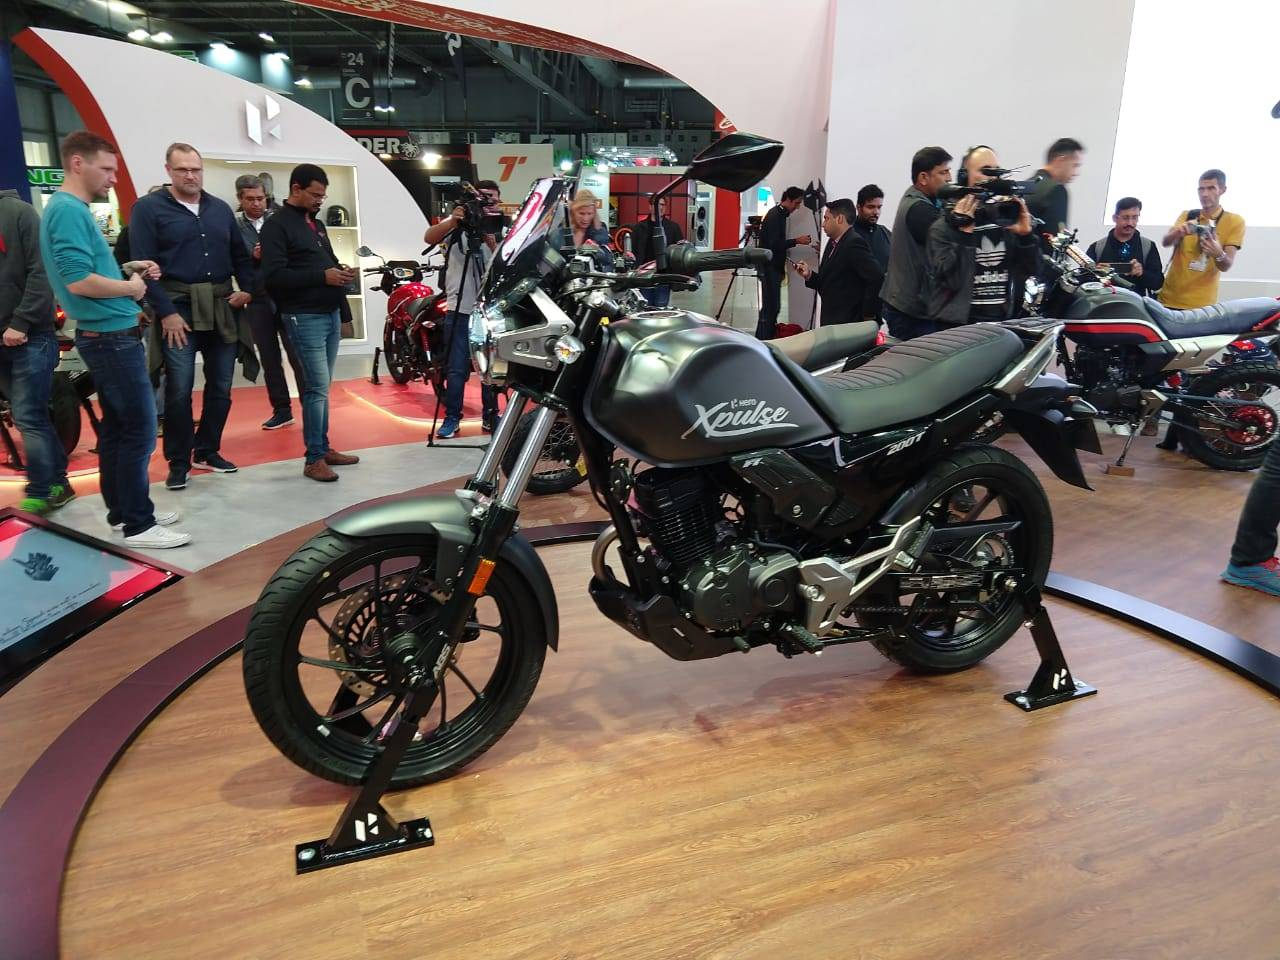 Hero MotoCorp also showcased four customised motorcycle concepts.